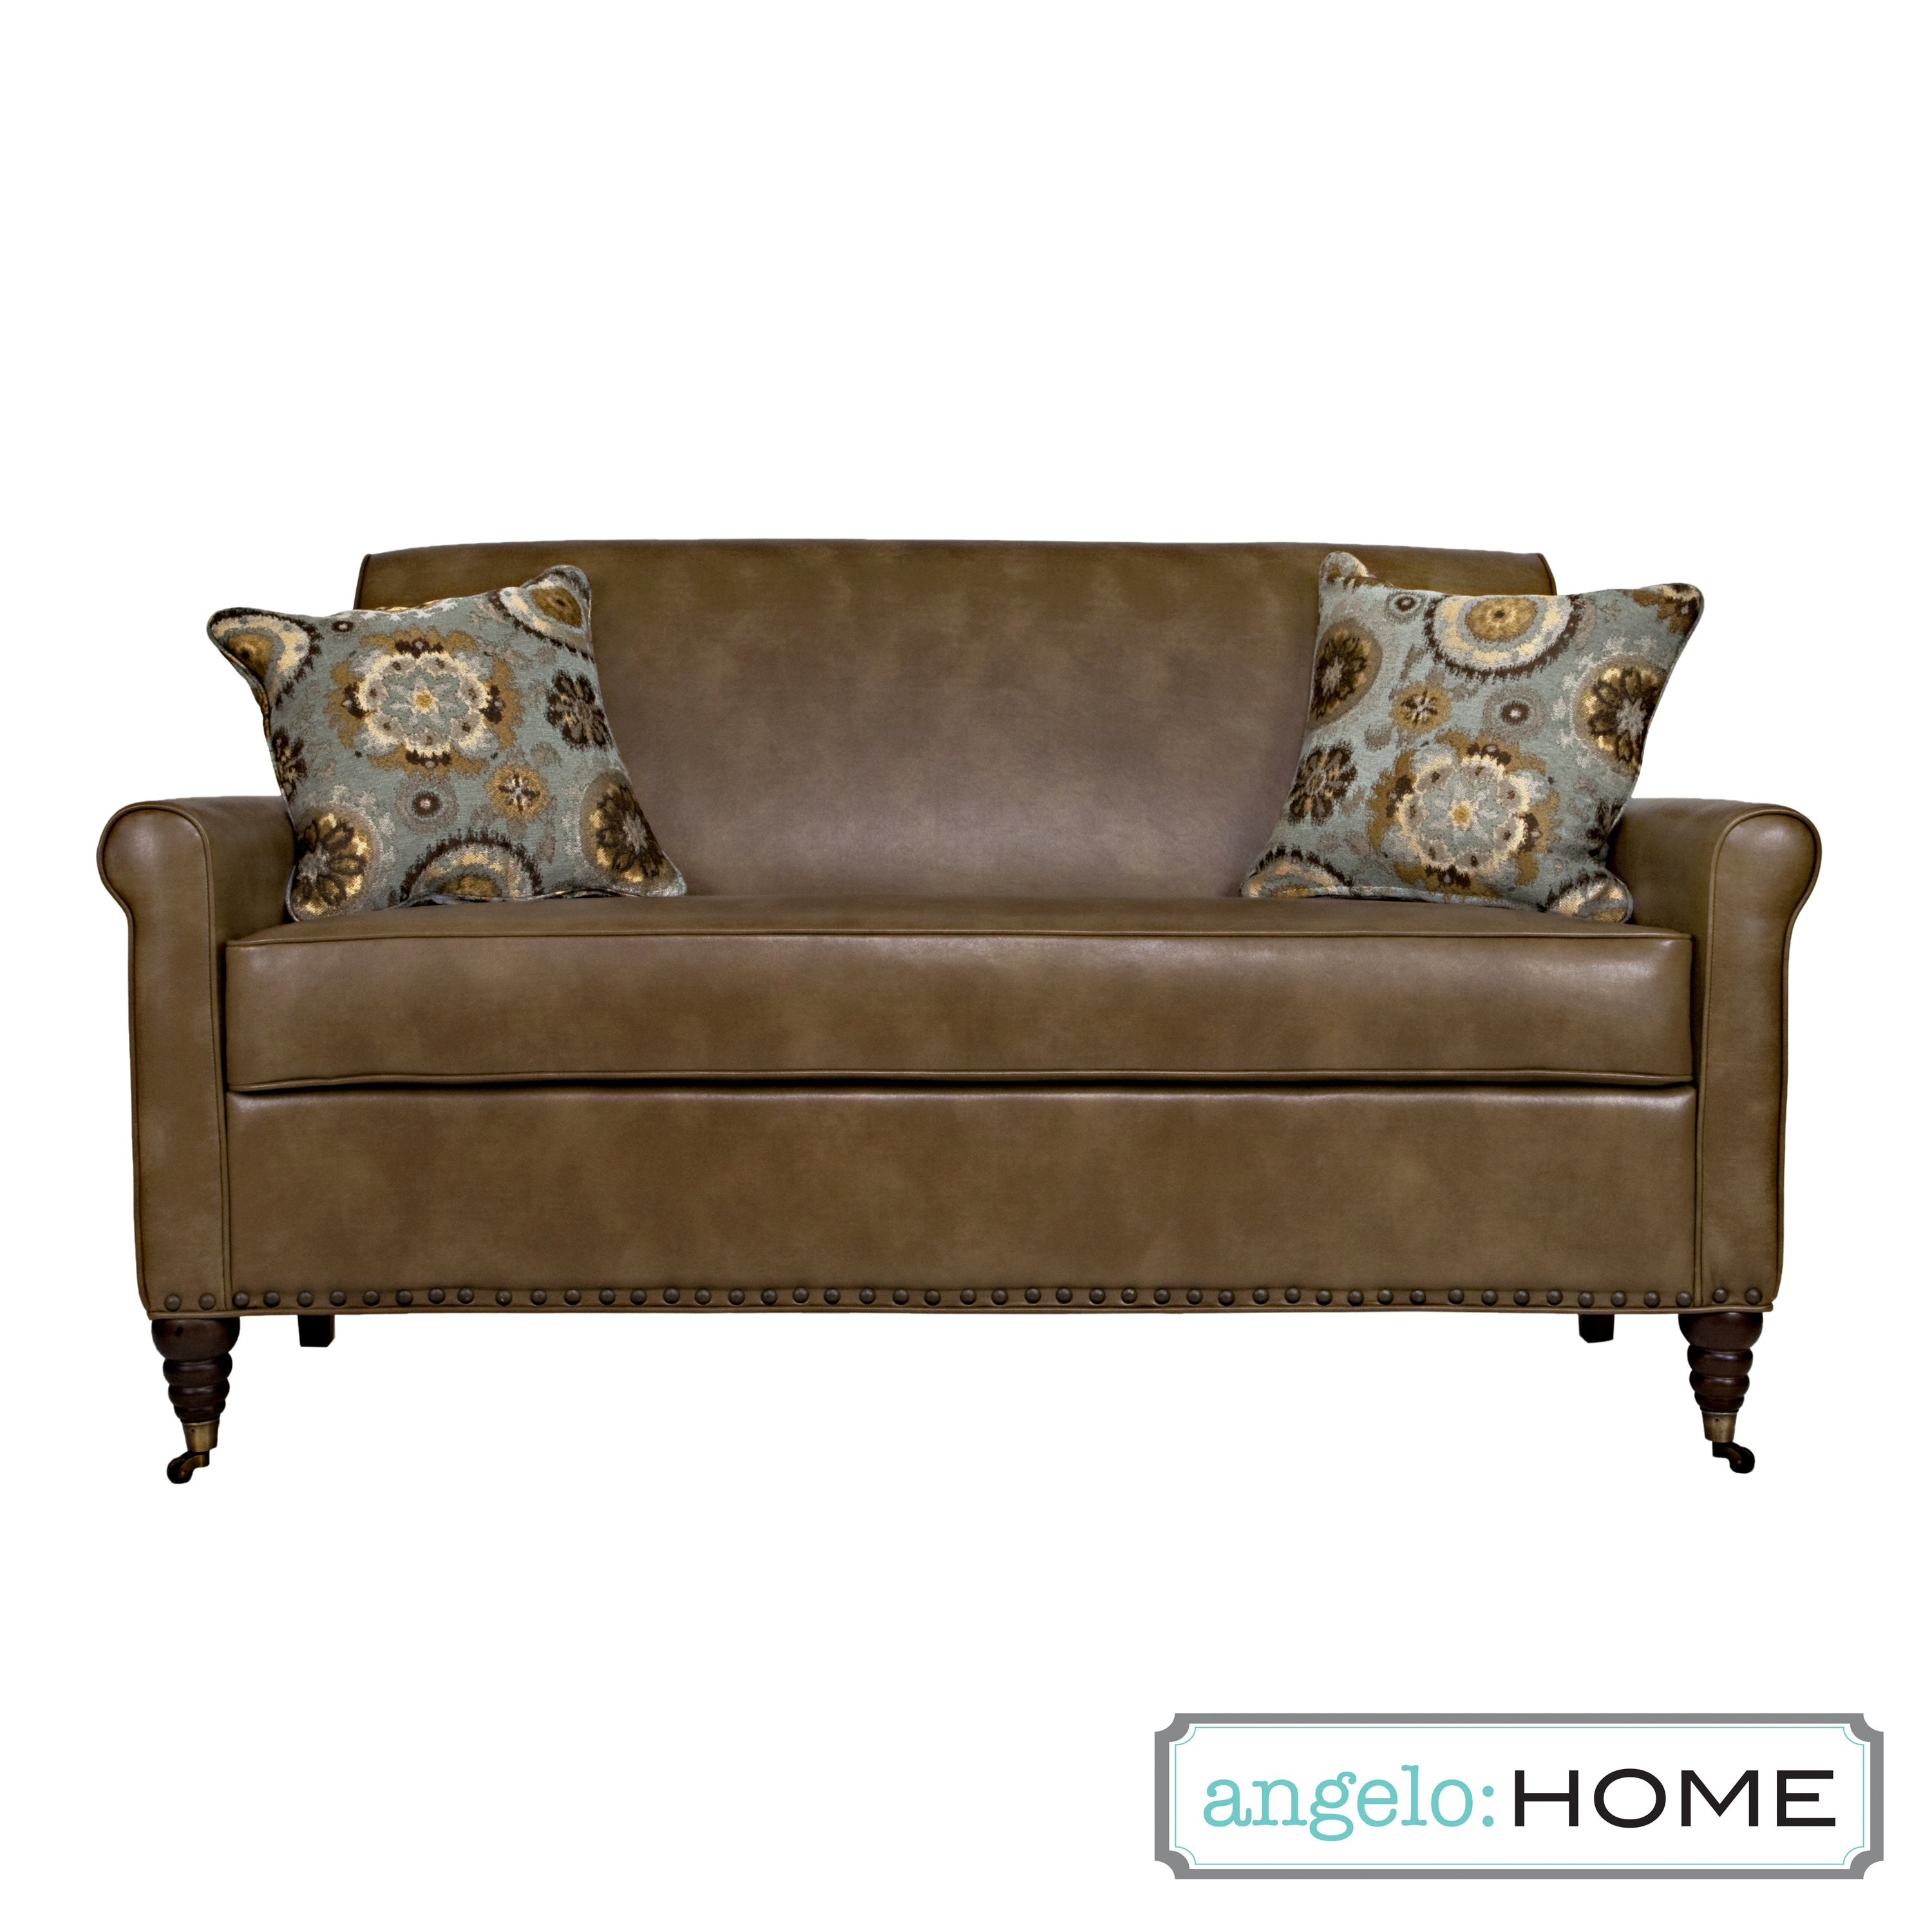 angelo:HOME Harlow Milk Chocolate Brown Renu Leather Sofa